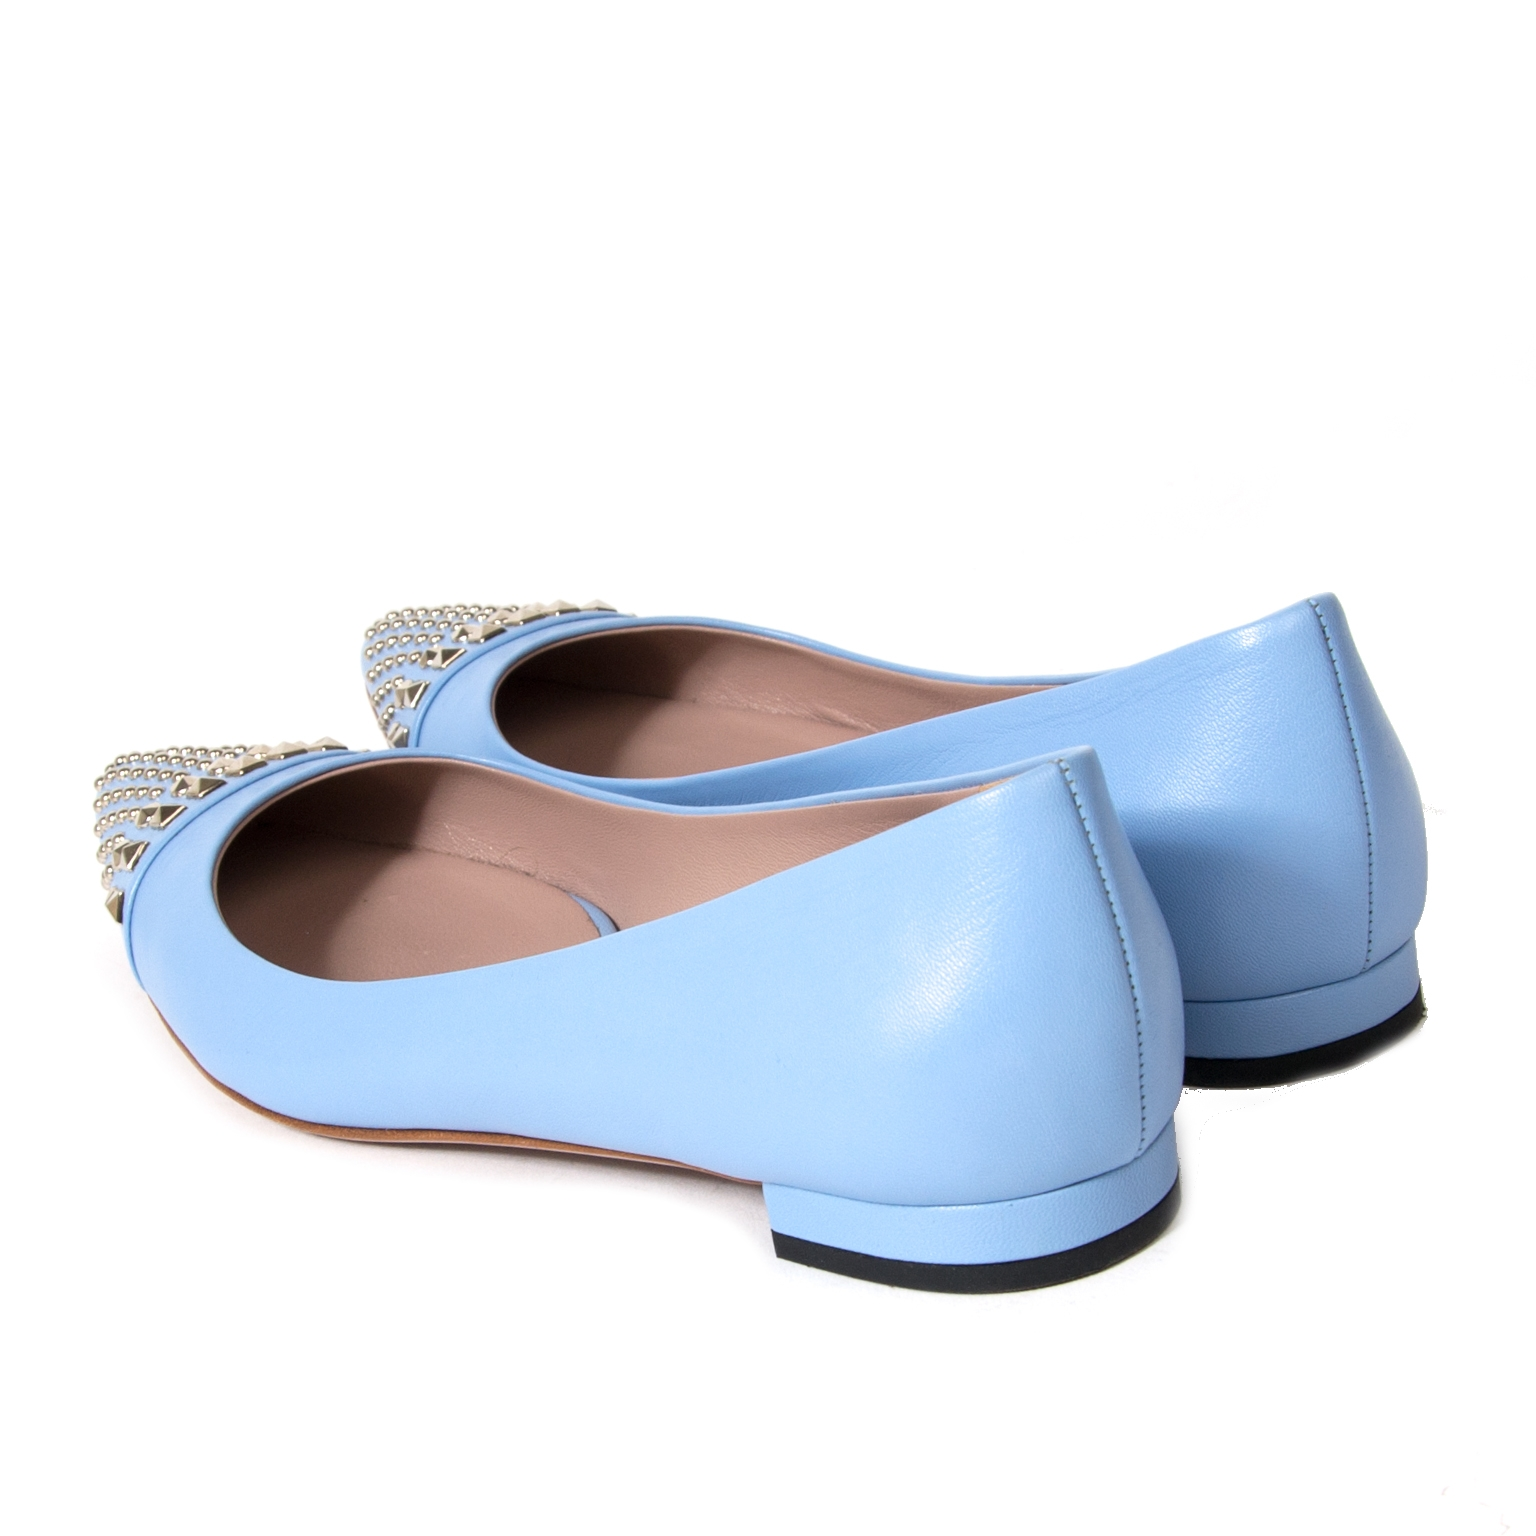 gucci coline blue leather studded flats now for sale at labellov vintage fashion webshop belgium